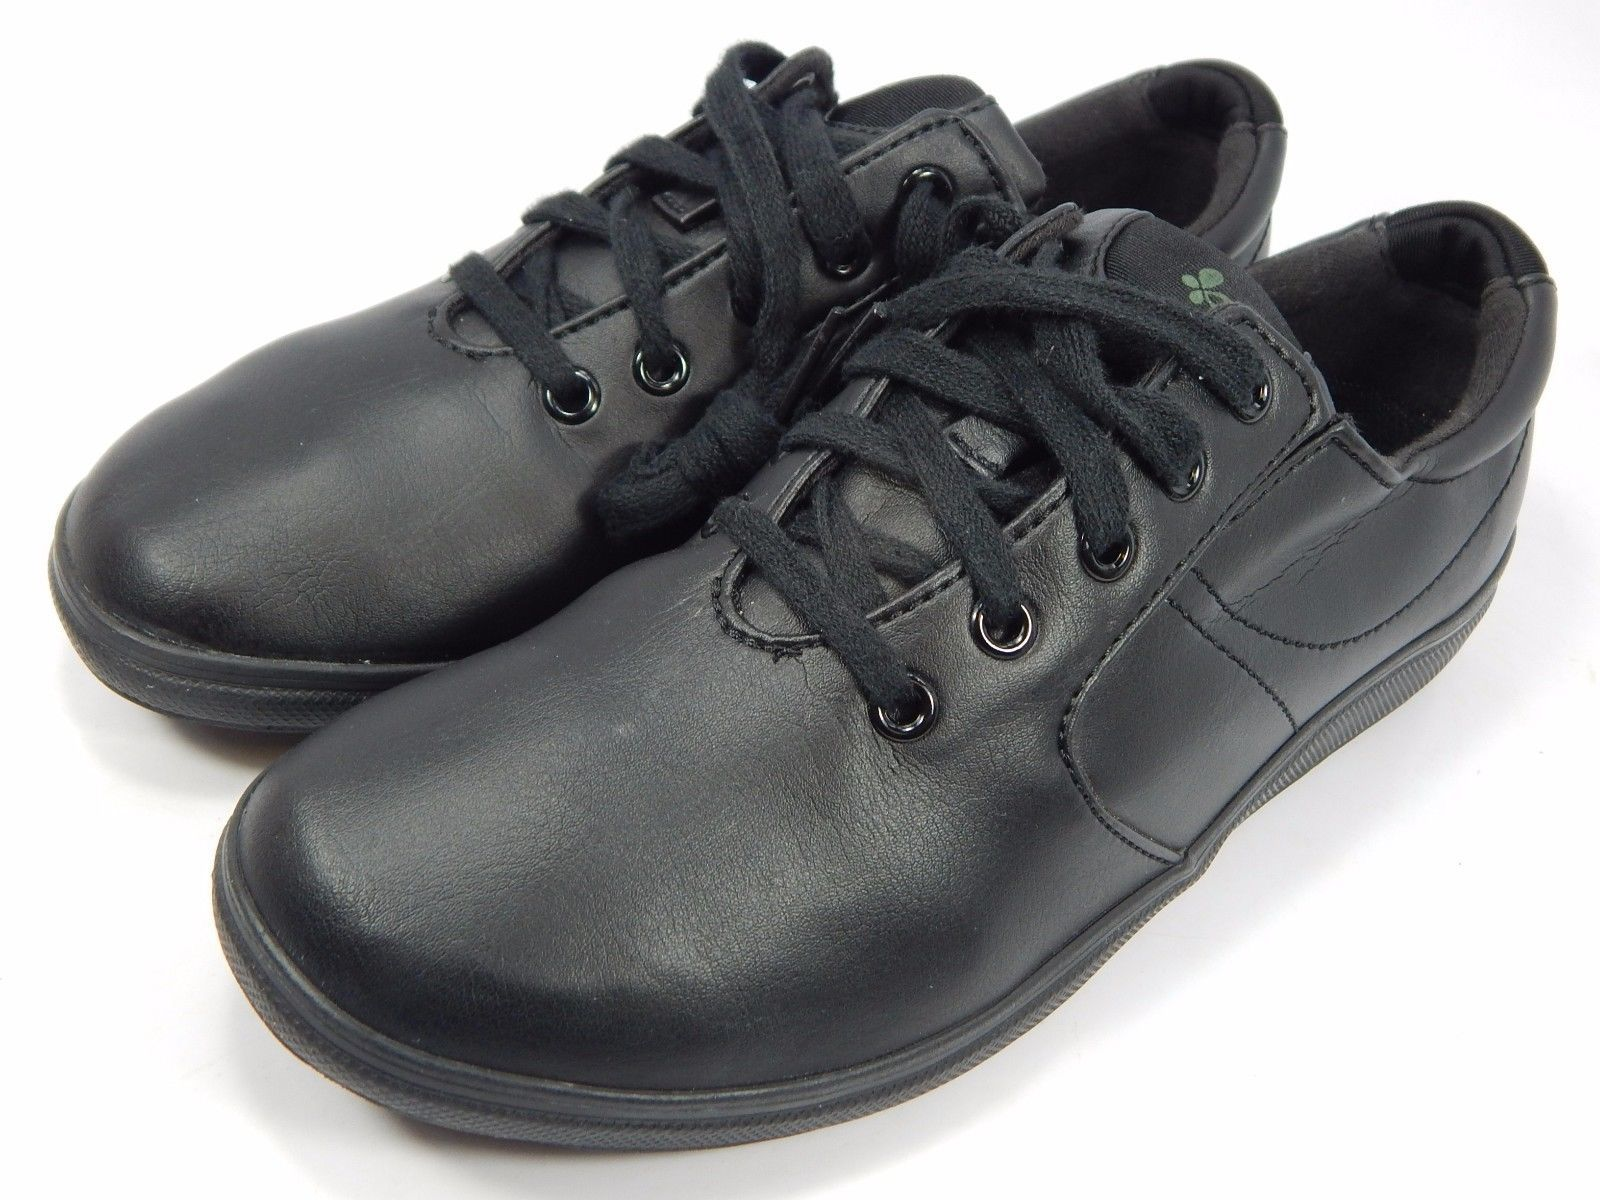 Grasshoppers Stretch Plus Lace Up Women's Sneakers Shoes Size US 7.5 M (B) Black